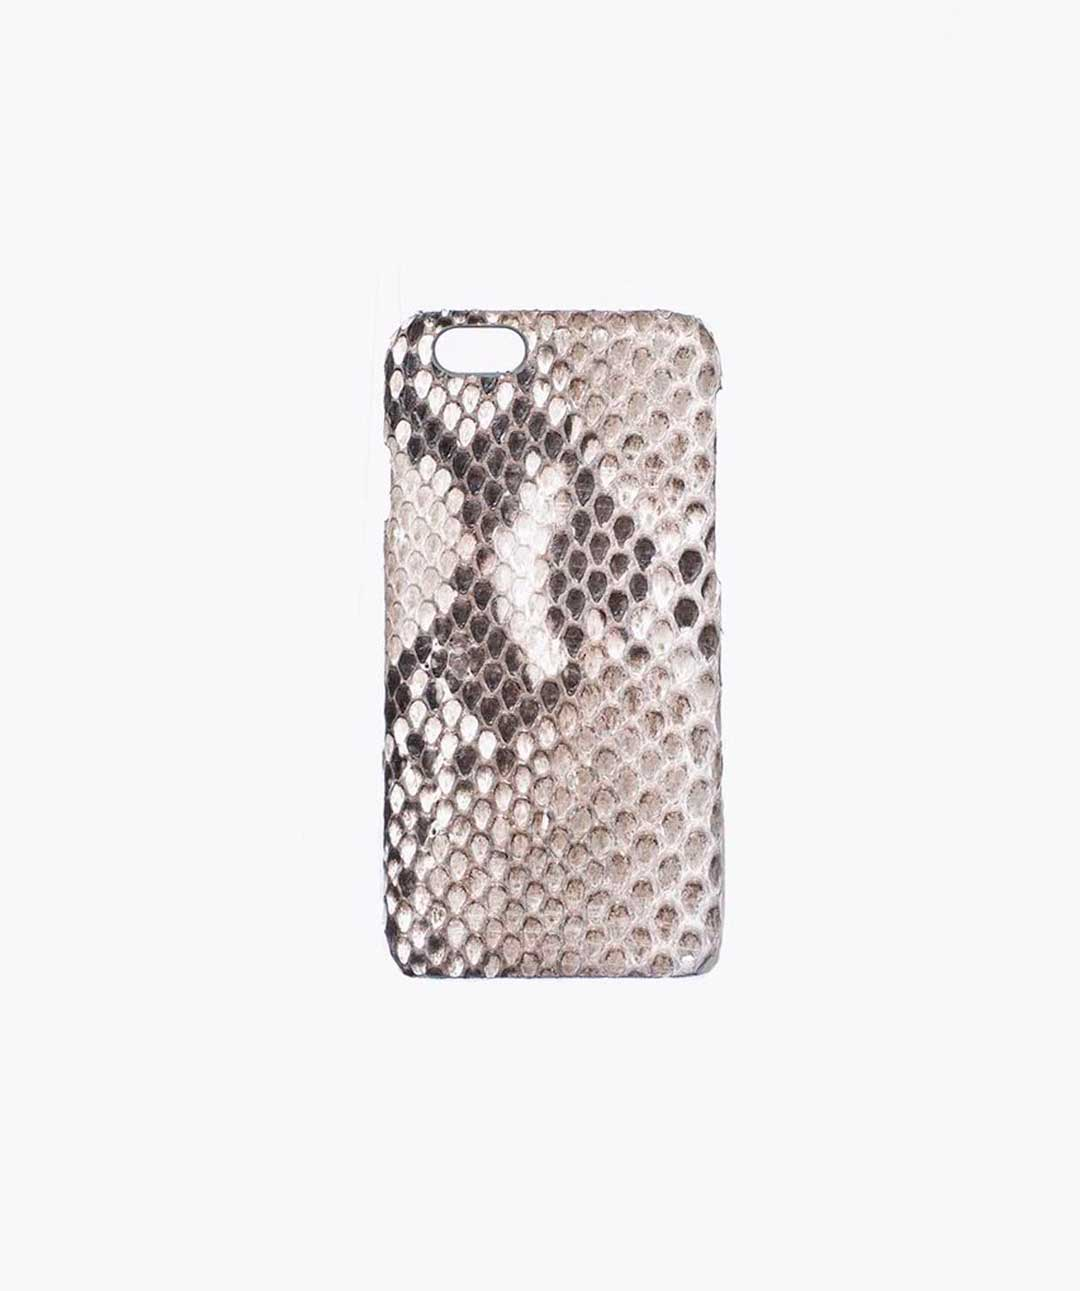 Python iPhone 6 Plus Cover